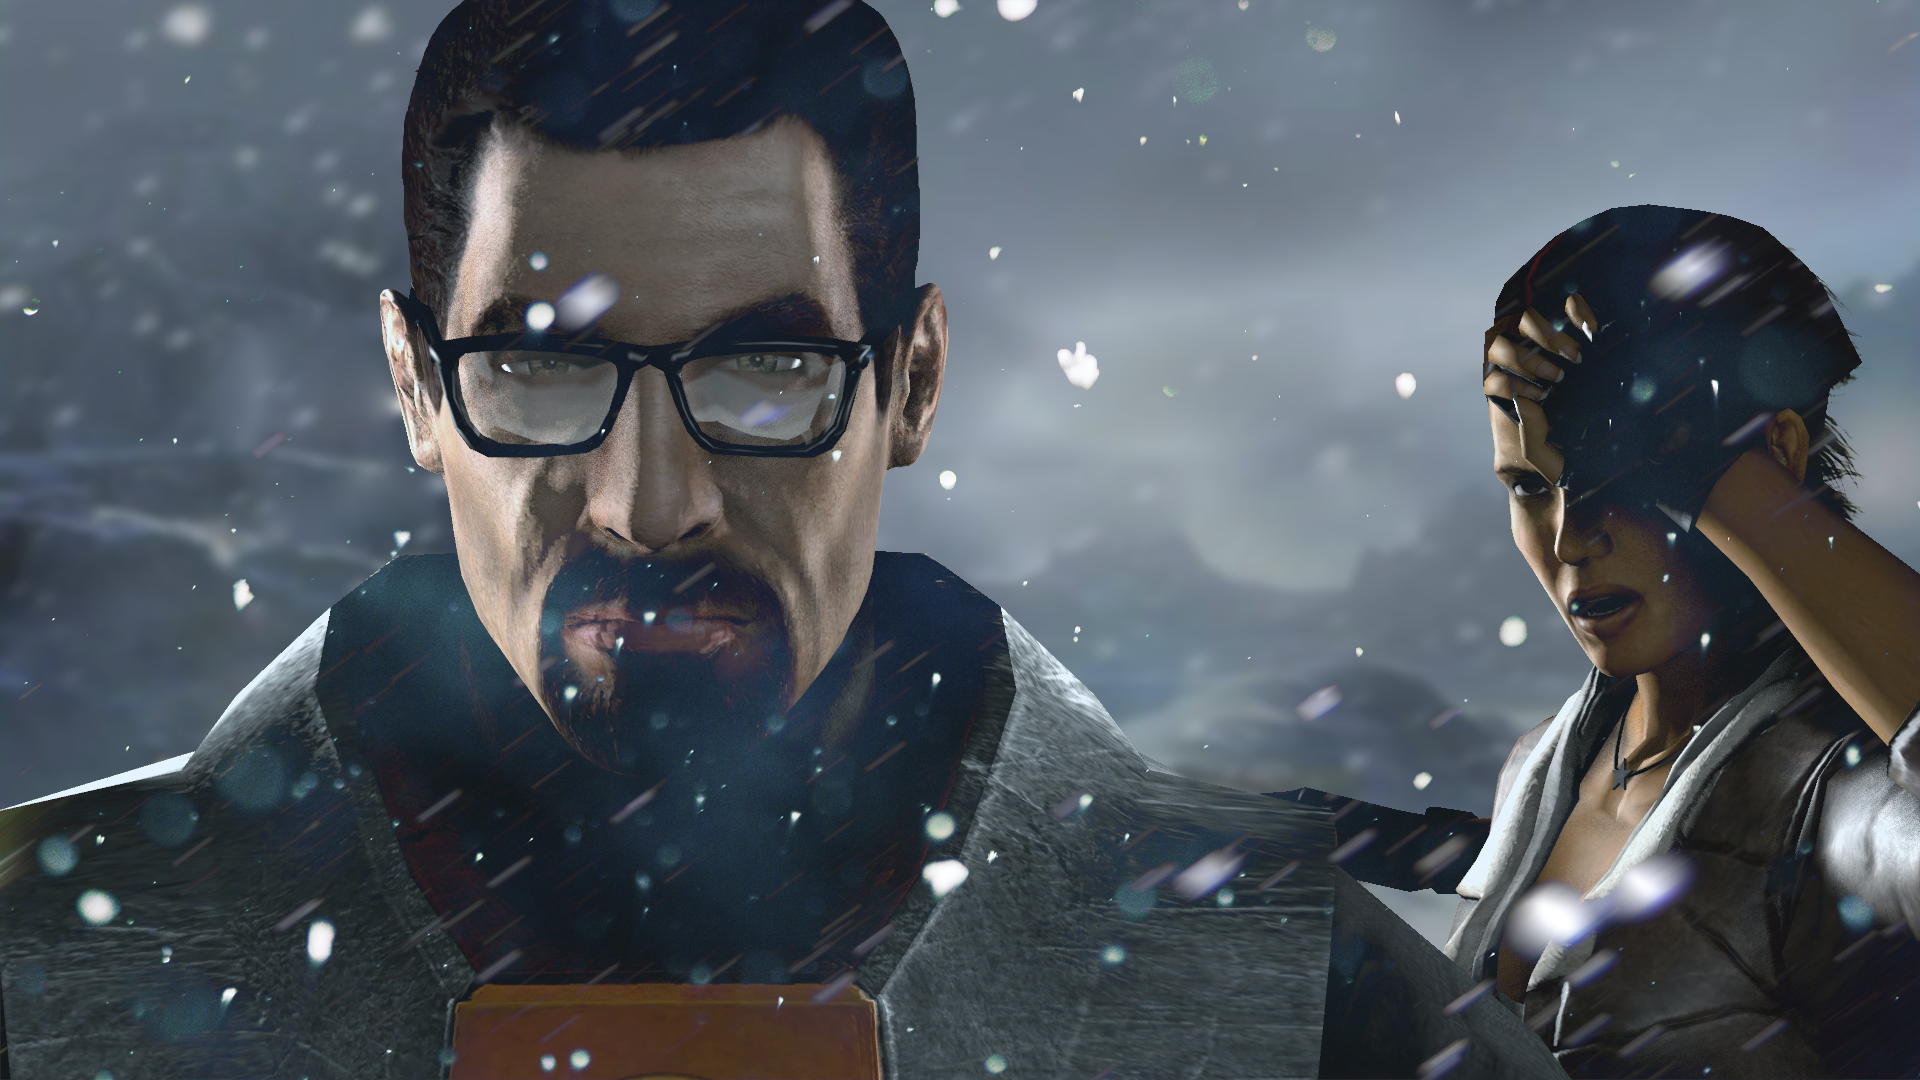 """Half-Life"" Lead Writer Has Left Valve - What does this mean for"